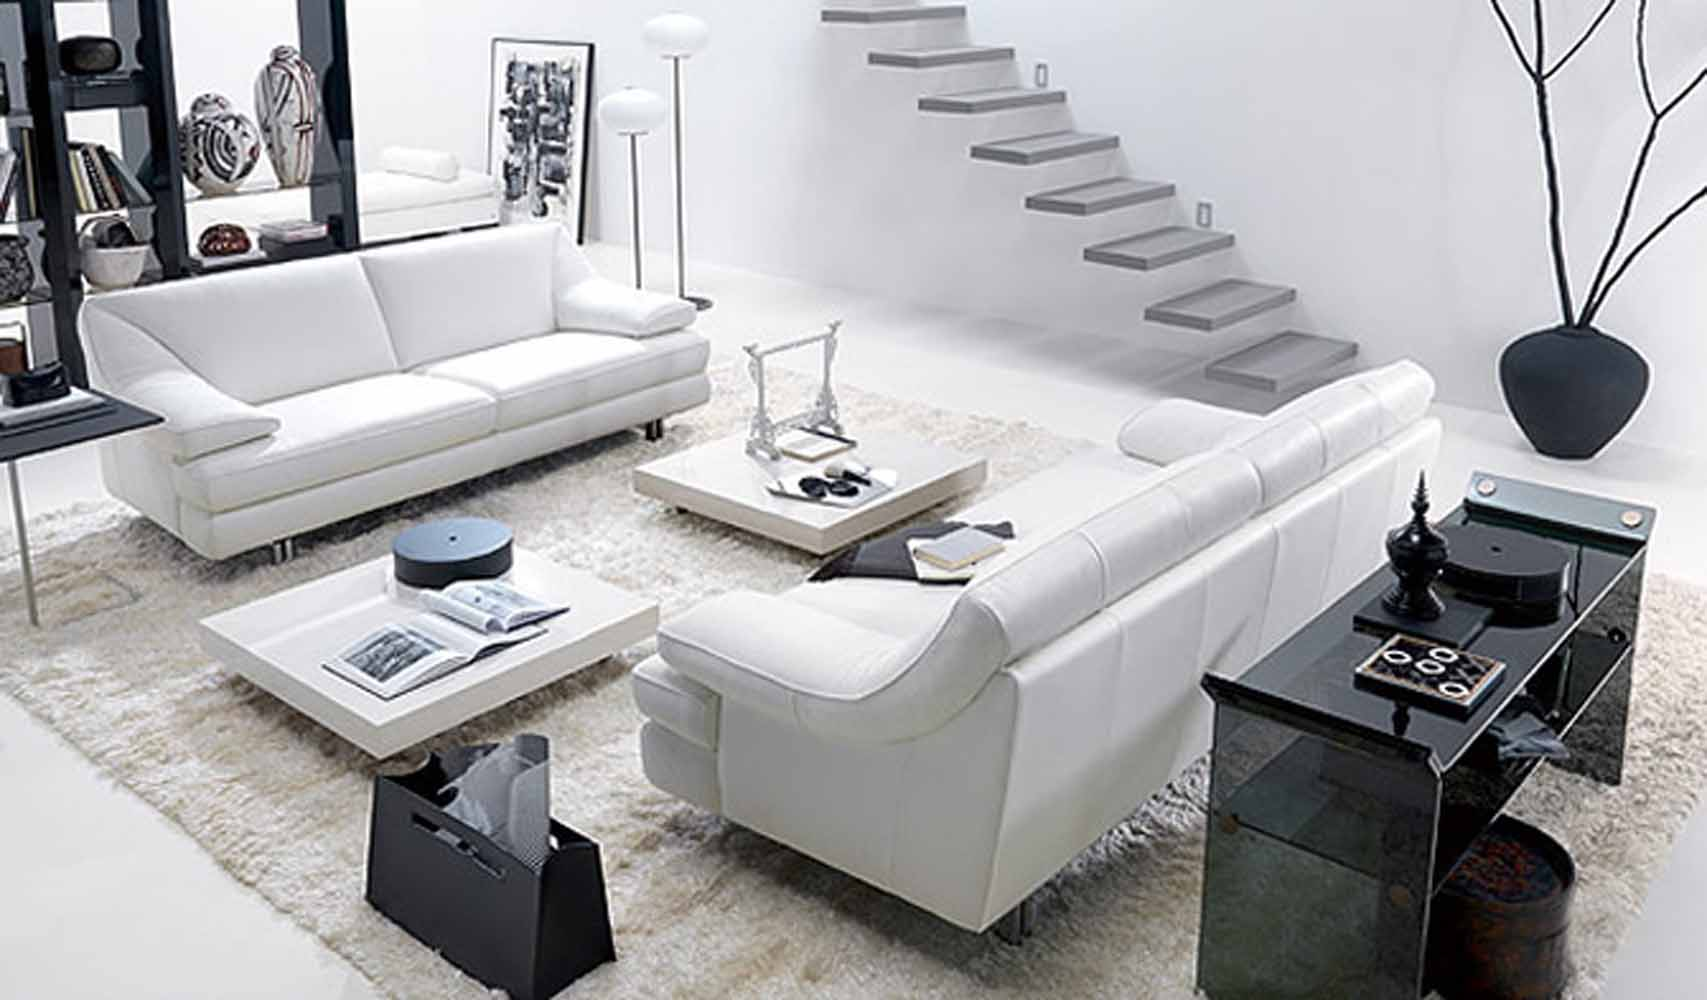 17 Inspiring Wonderful Black and White Contemporary Interior Designs Homesthetics 31